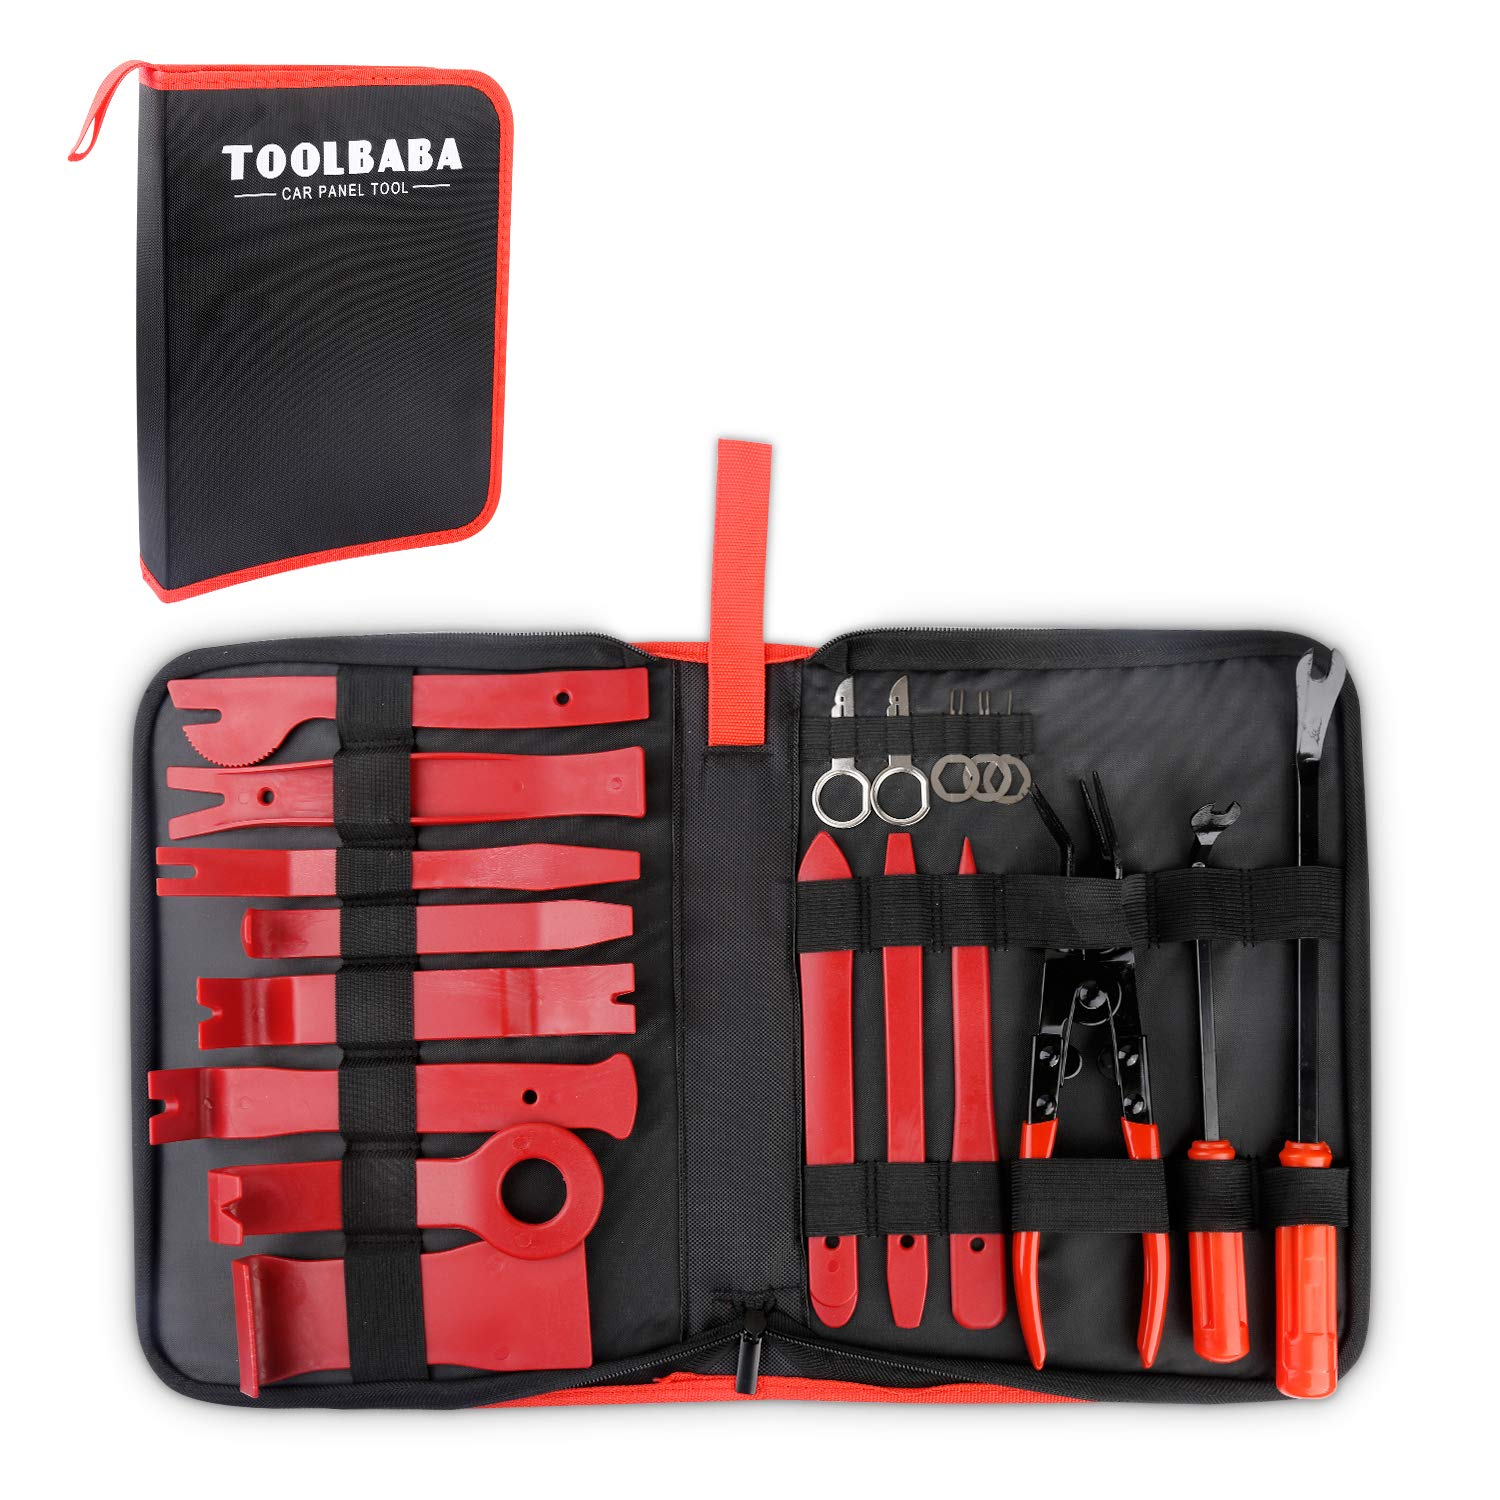 TOOLBABA Car Panel Removal Tools Kit -19pcs Trim Removal Tool Set Nylon for Car Panel Dash Audio Radio Removal Installer and Repair Pry Tool Kits with Storage Bag